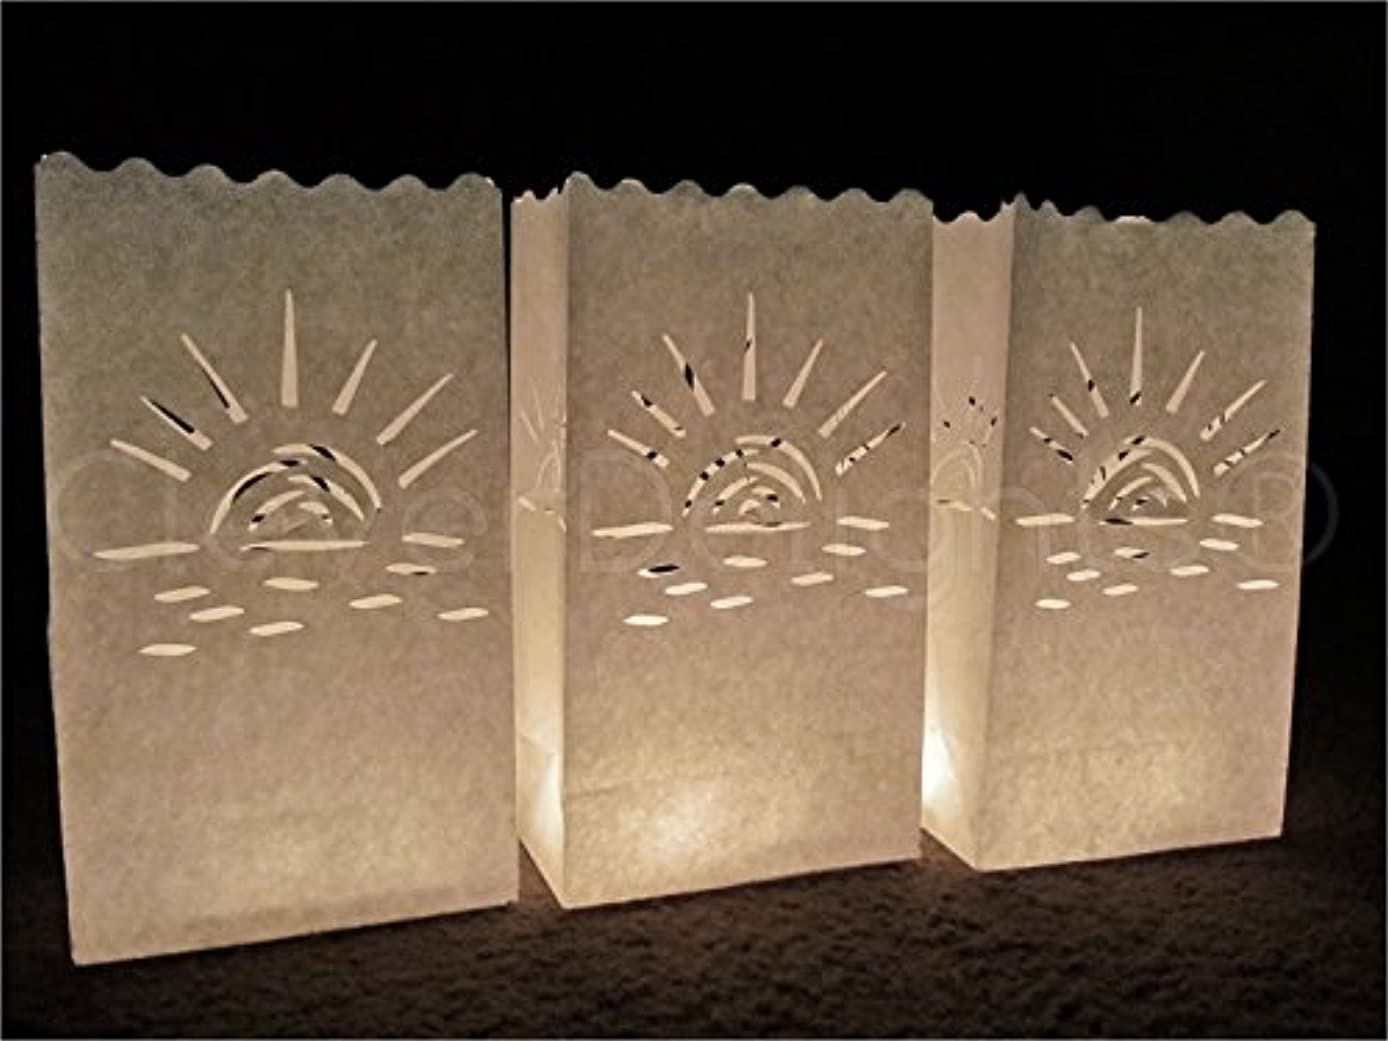 CleverDelights White Luminary Bags - 30 Count - Sunset Design - Wedding, Reception, Party and Event Decor - Flame Resistant Paper - Luminaria